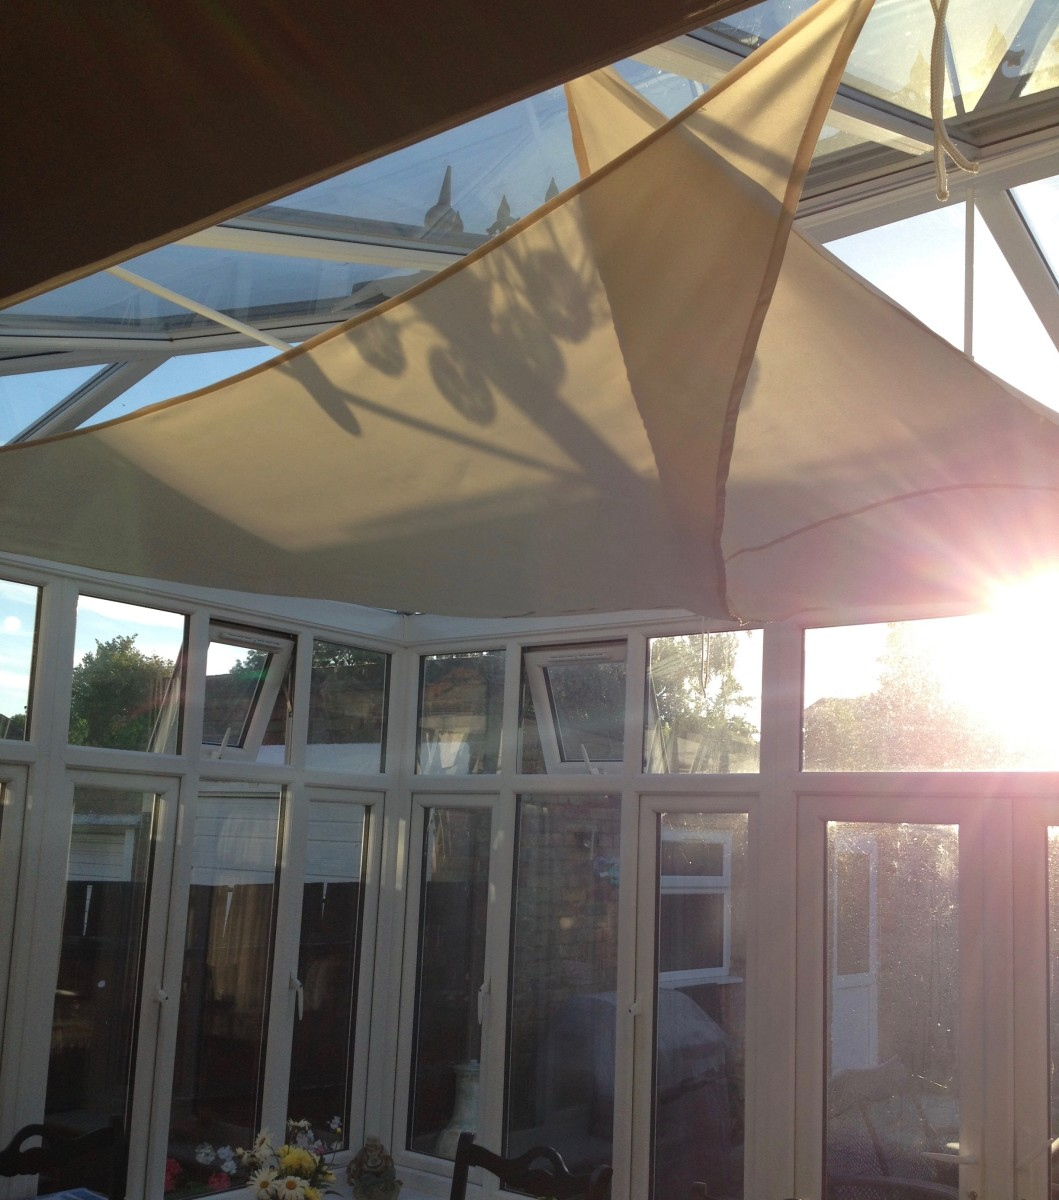 Sails make great shading inside a conservatory room.